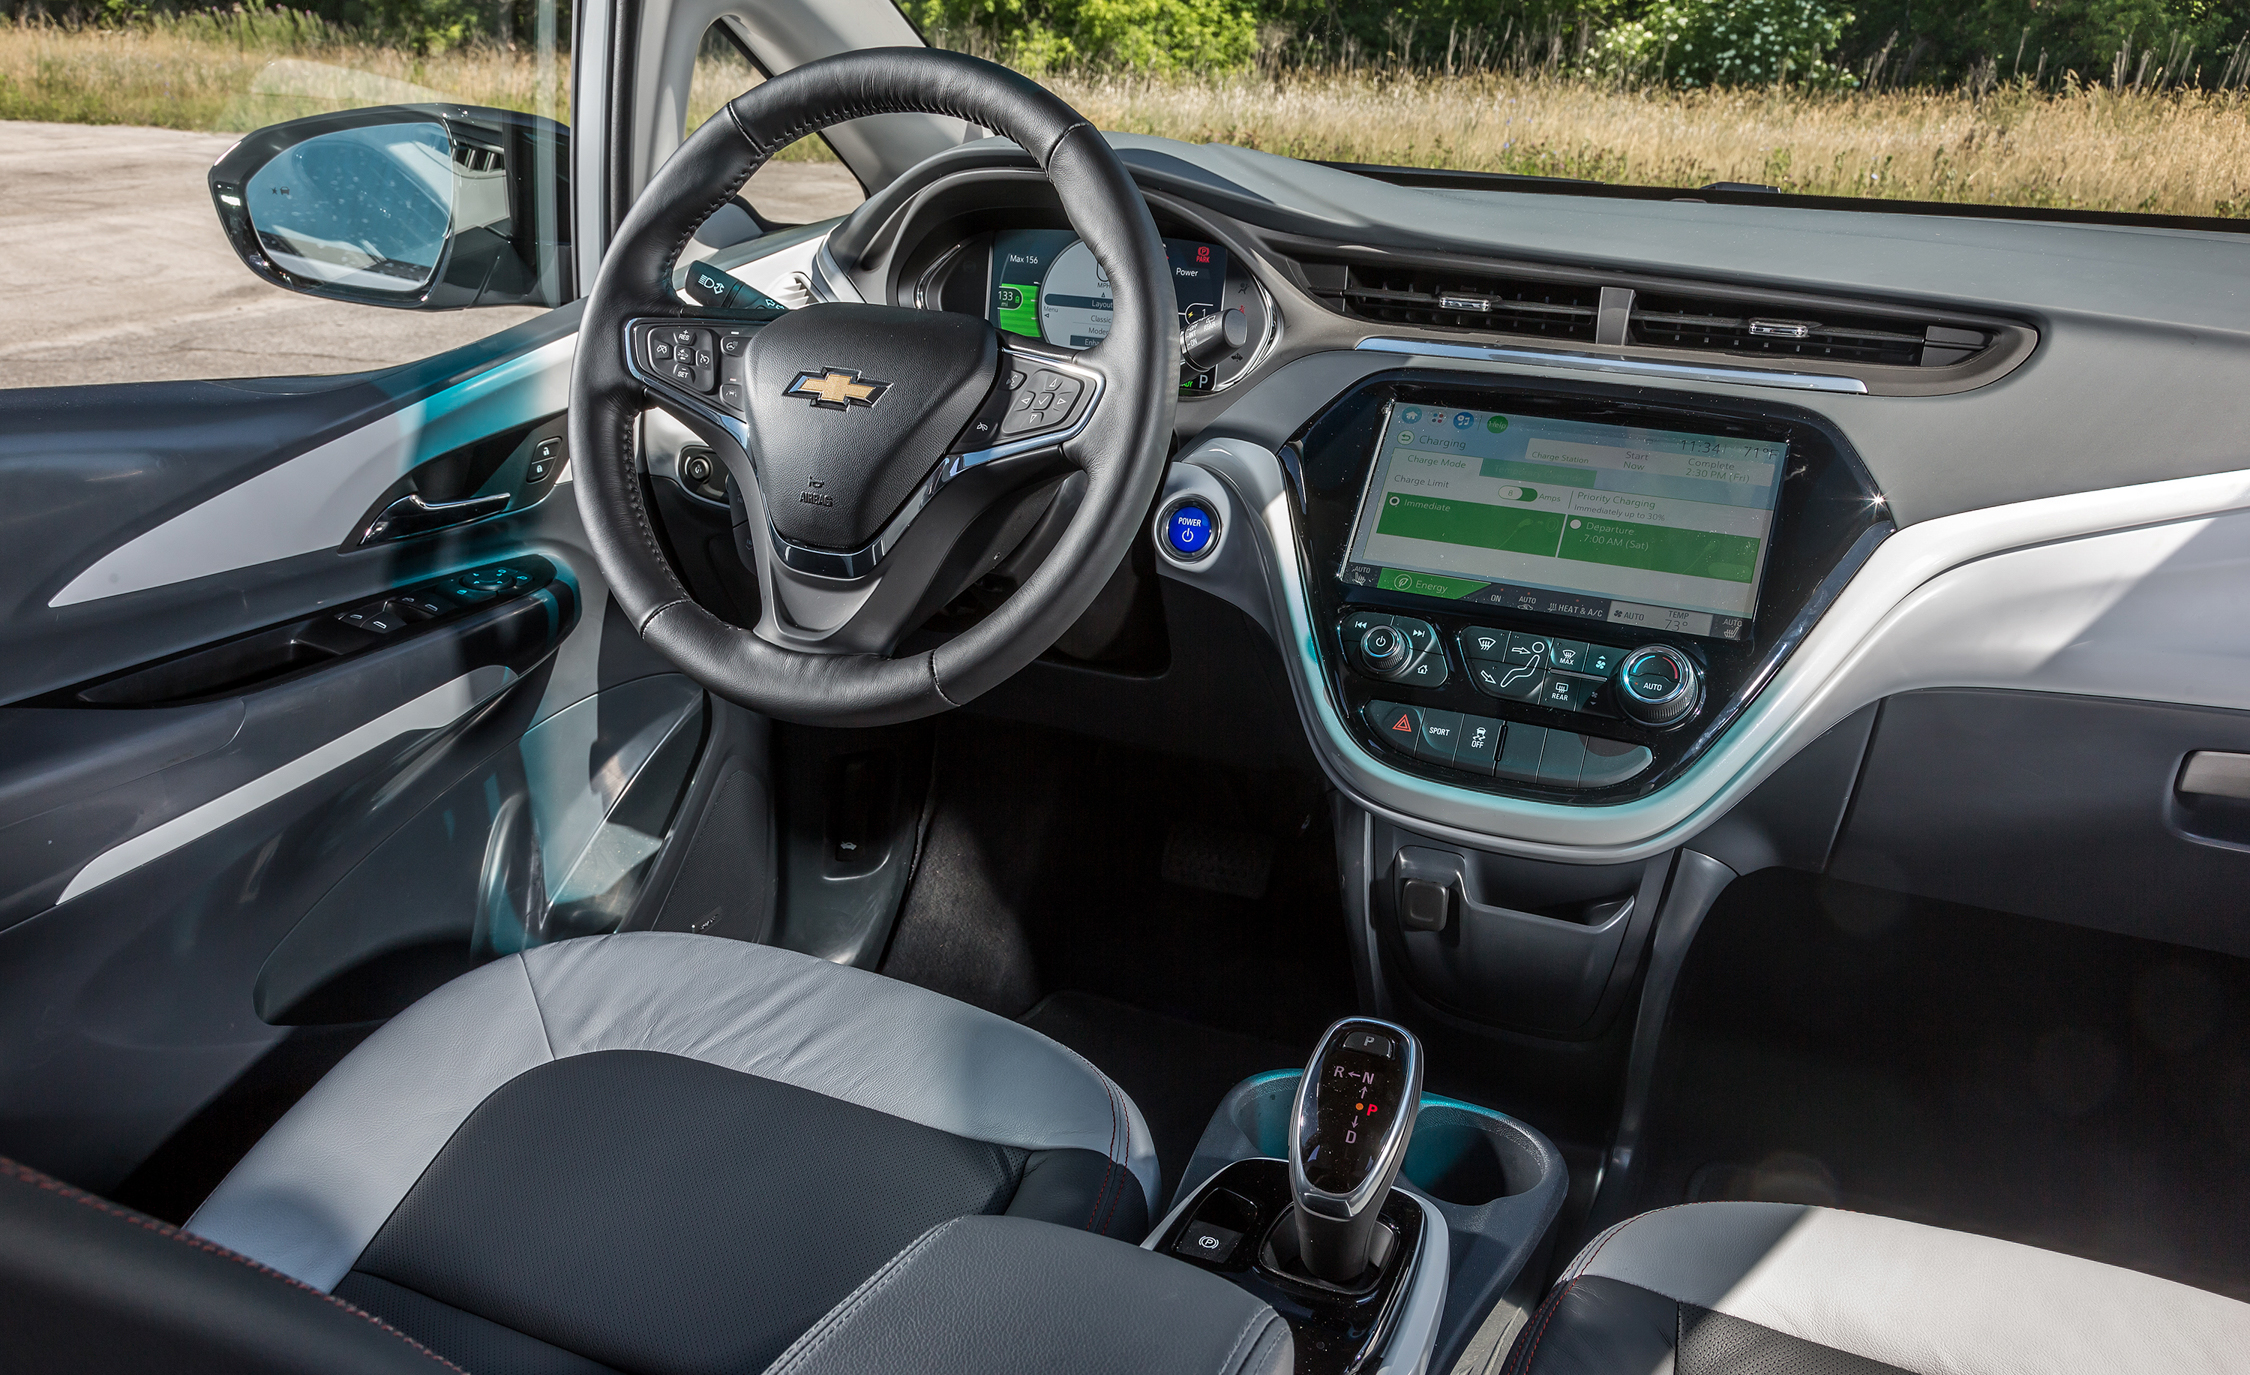 2017 Chevrolet Bolt Ev Interior Cockpit (Photo 6 of 12)